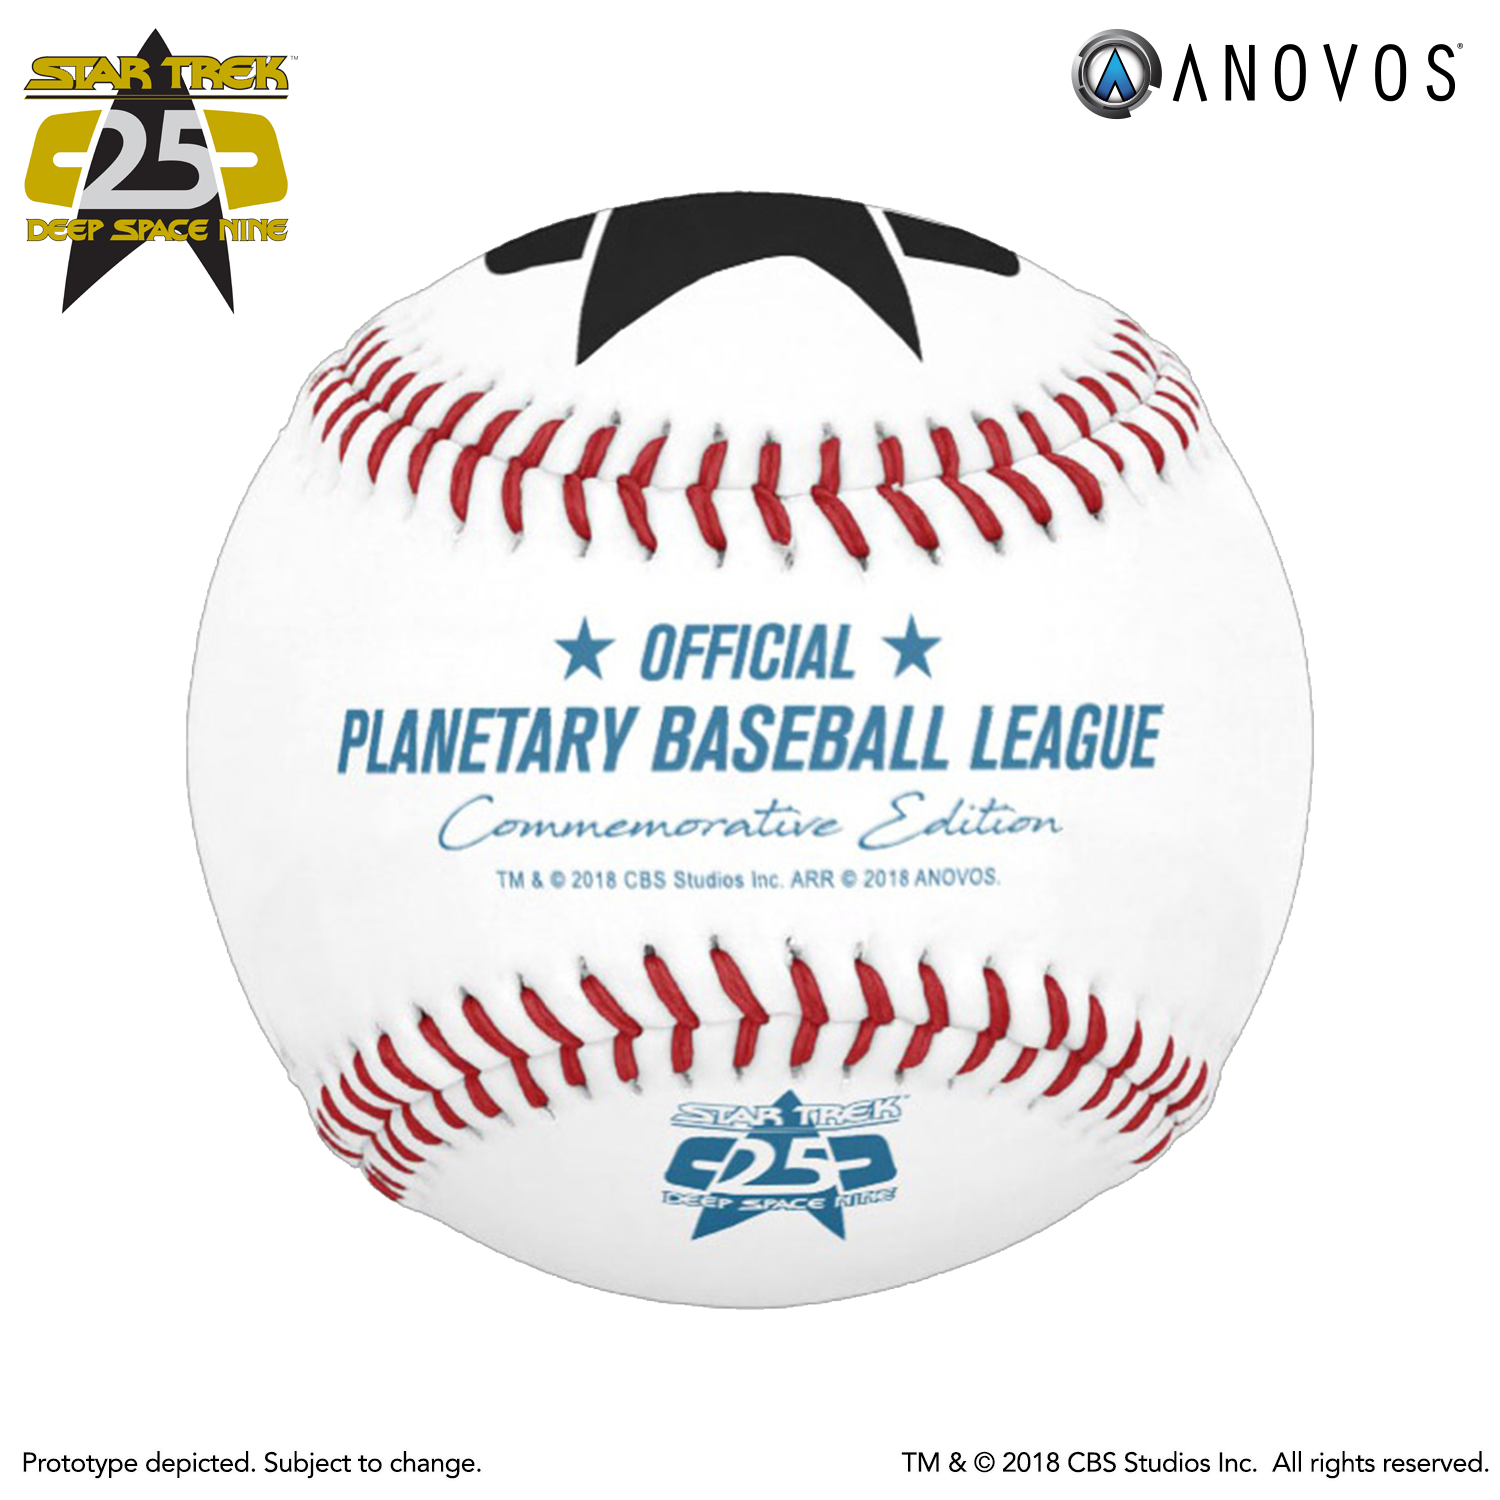 c4a40599256 ProductPage-02184000-25th Anniversary DS9 Baseball-1.png v 1533406843